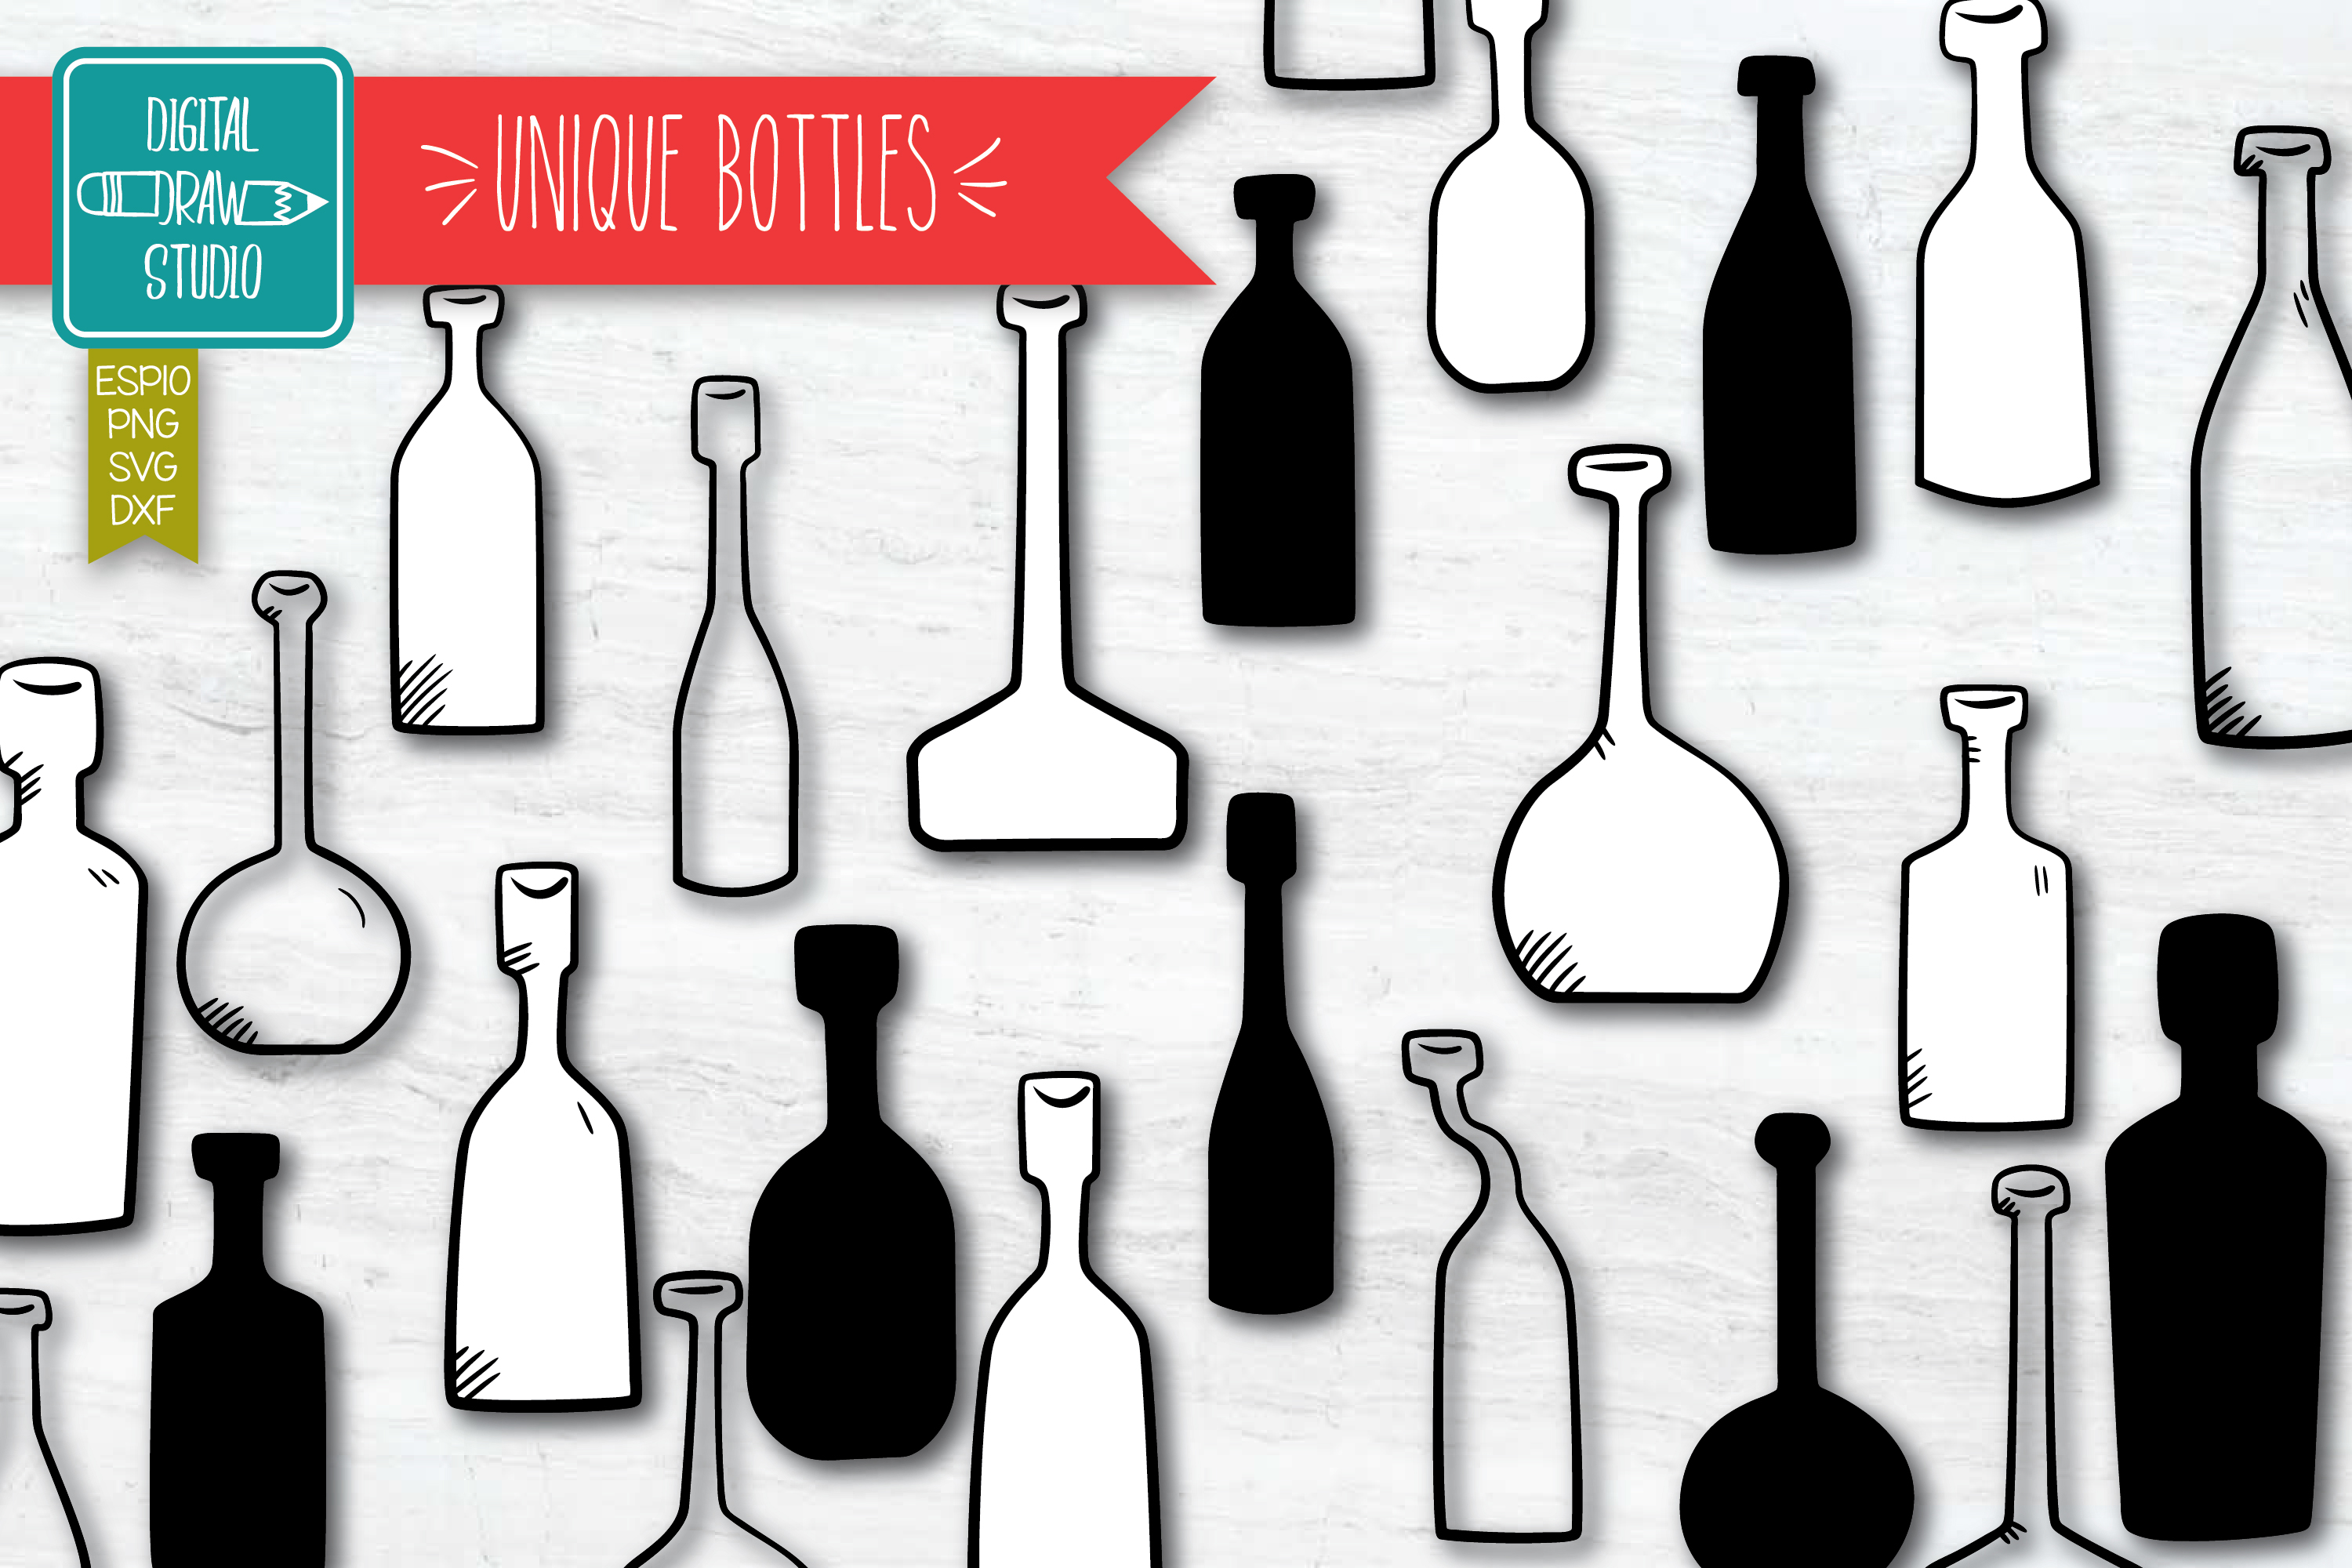 Download Free Vintage Bottles Hand Drawn Potion Vial Graphic By for Cricut Explore, Silhouette and other cutting machines.